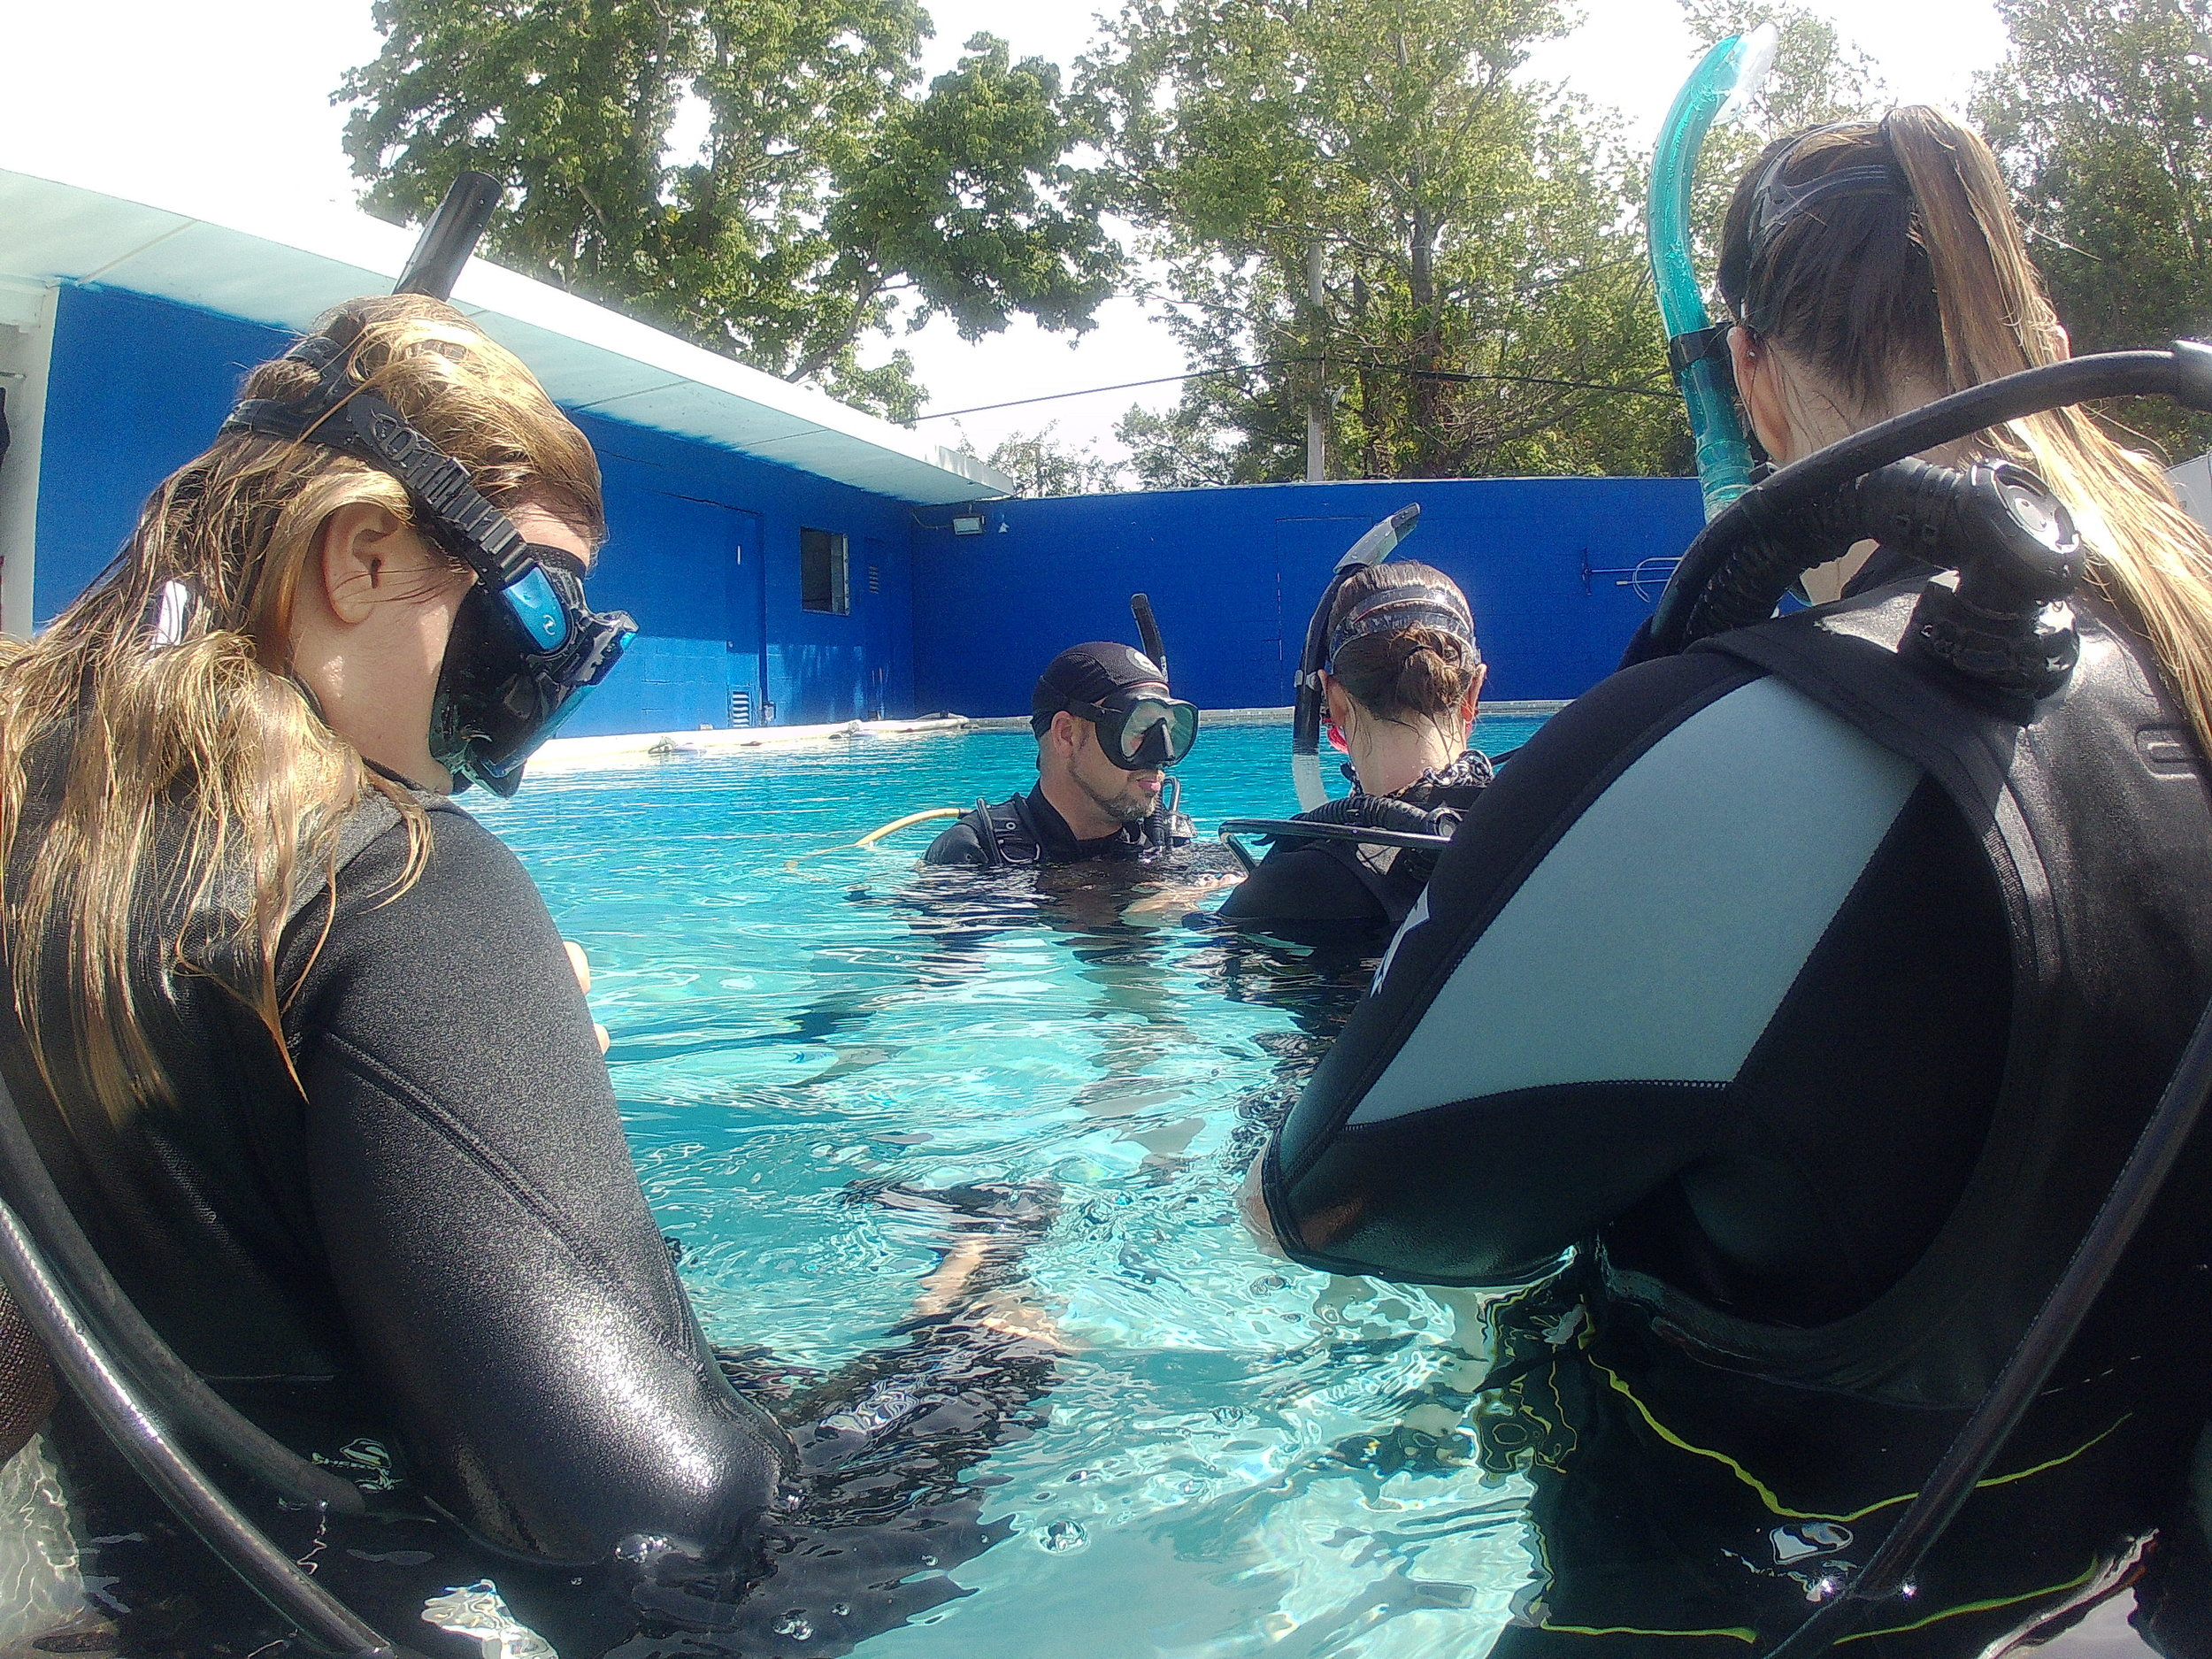 PADI Open Water Diver  - Open Water Diver is the first step into a new world underwater. This certification will allow you explore to maximum depth of 60ft. It will also allow you to purchase and rent life support equipment.